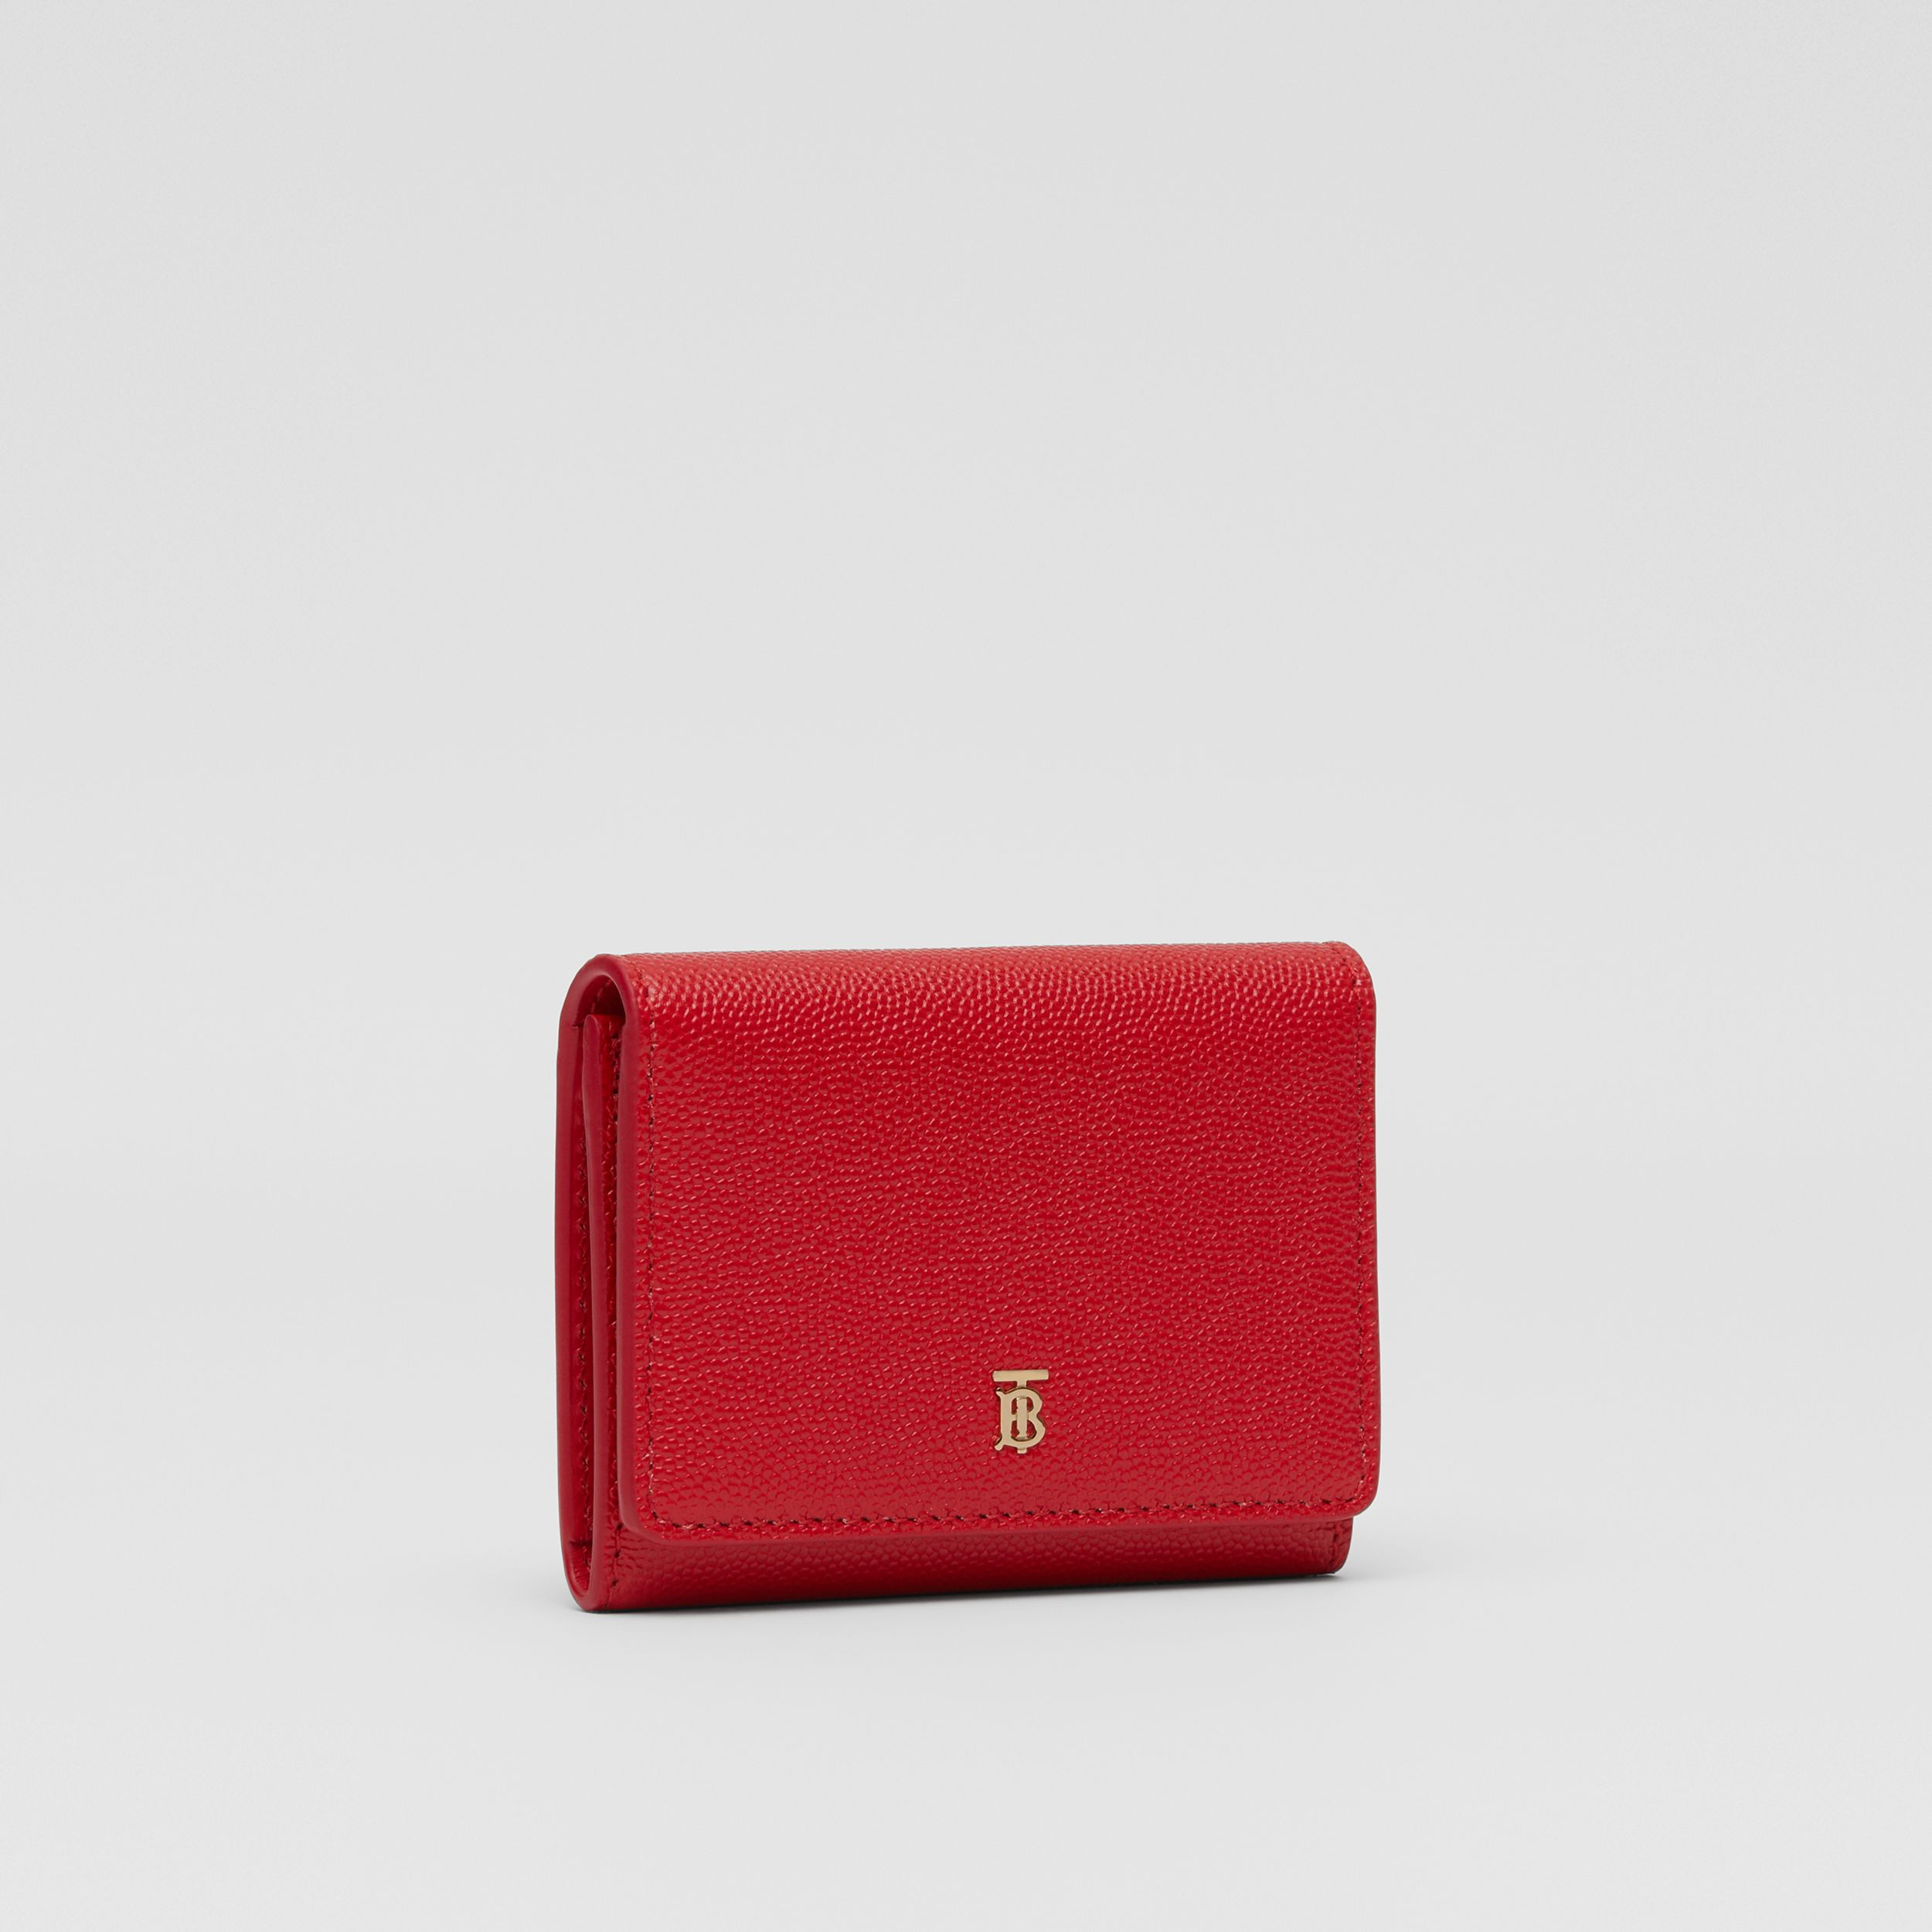 Grainy Leather ID Card Case in Bright Red - Women | Burberry - 4